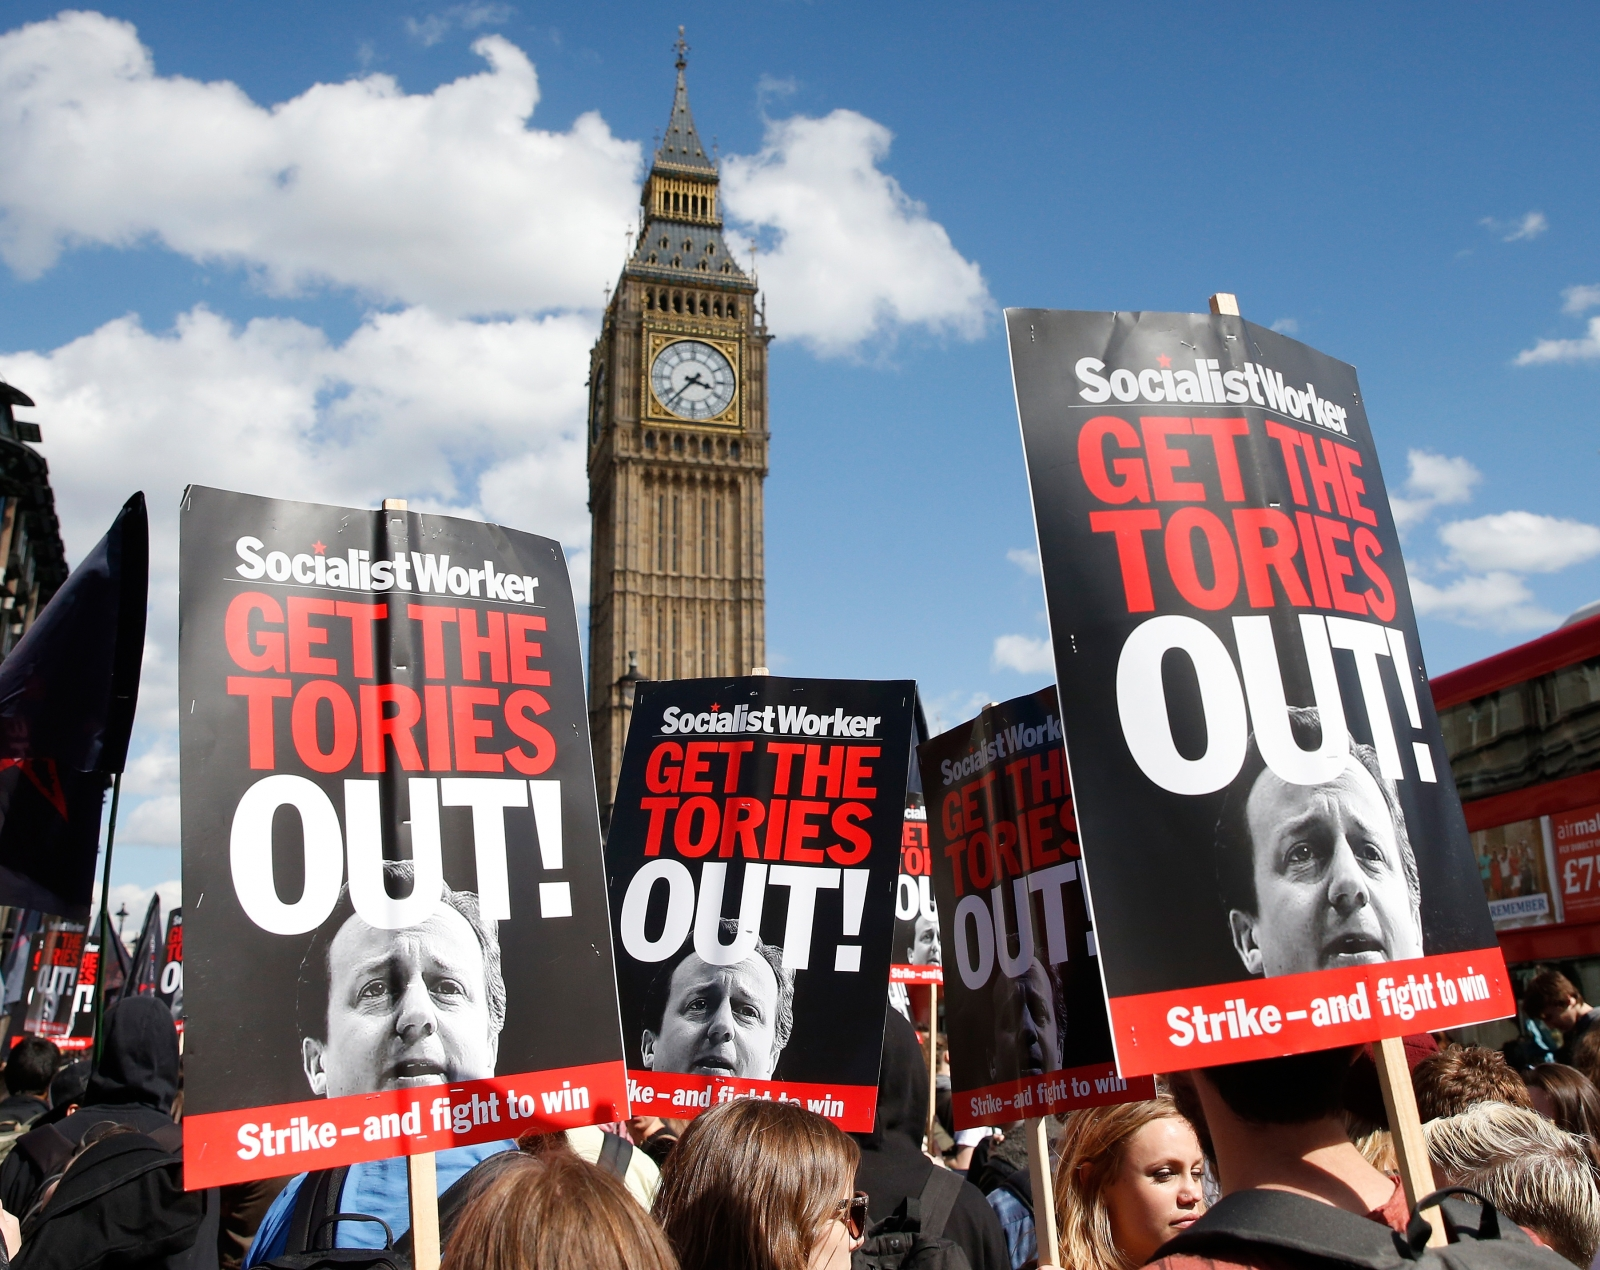 Anti-Tory sentiments ran high at the protests